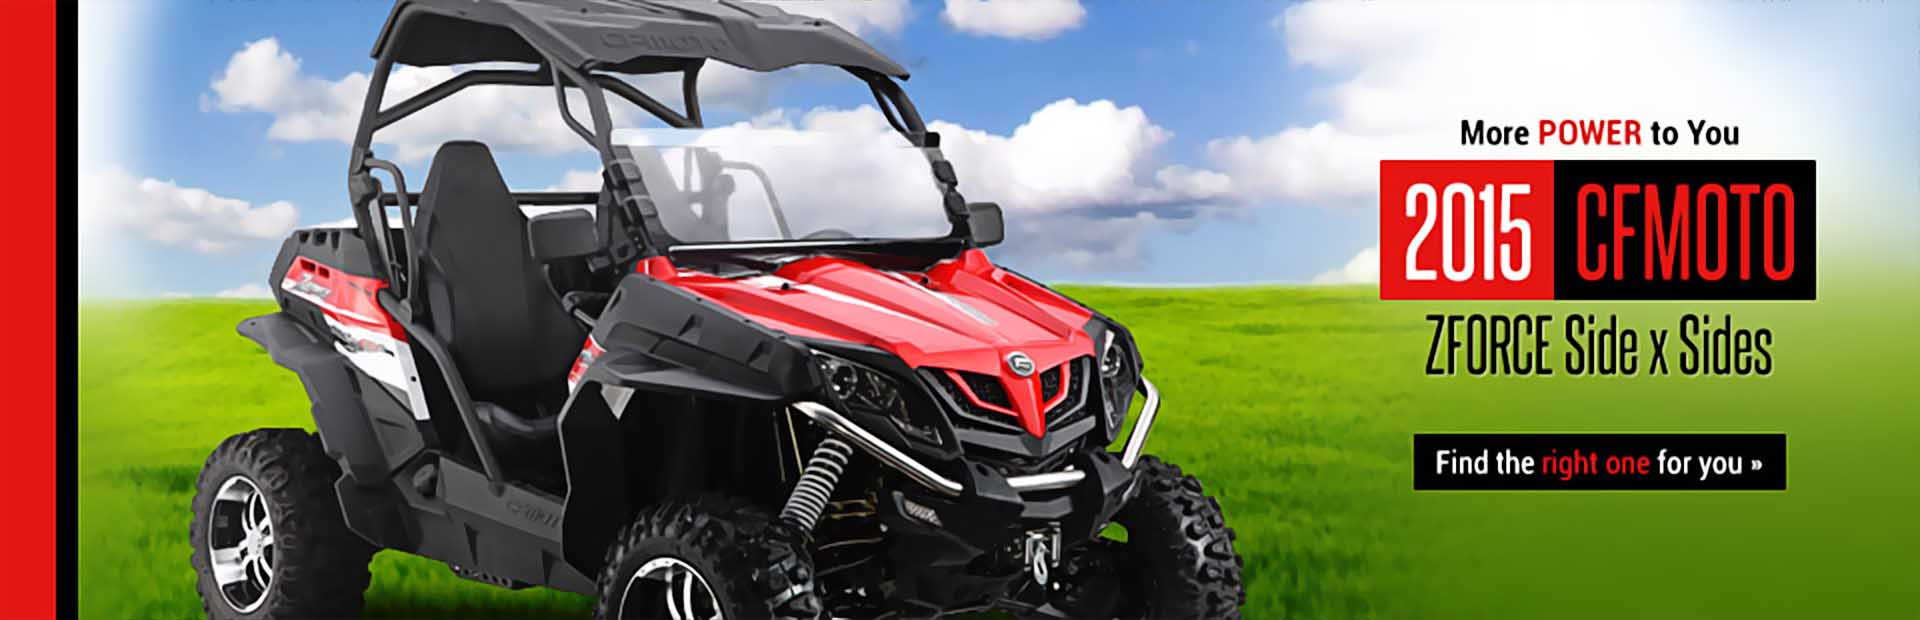 2015 CFMOTO ZFORCE Side x Sides: Click here to view the models.